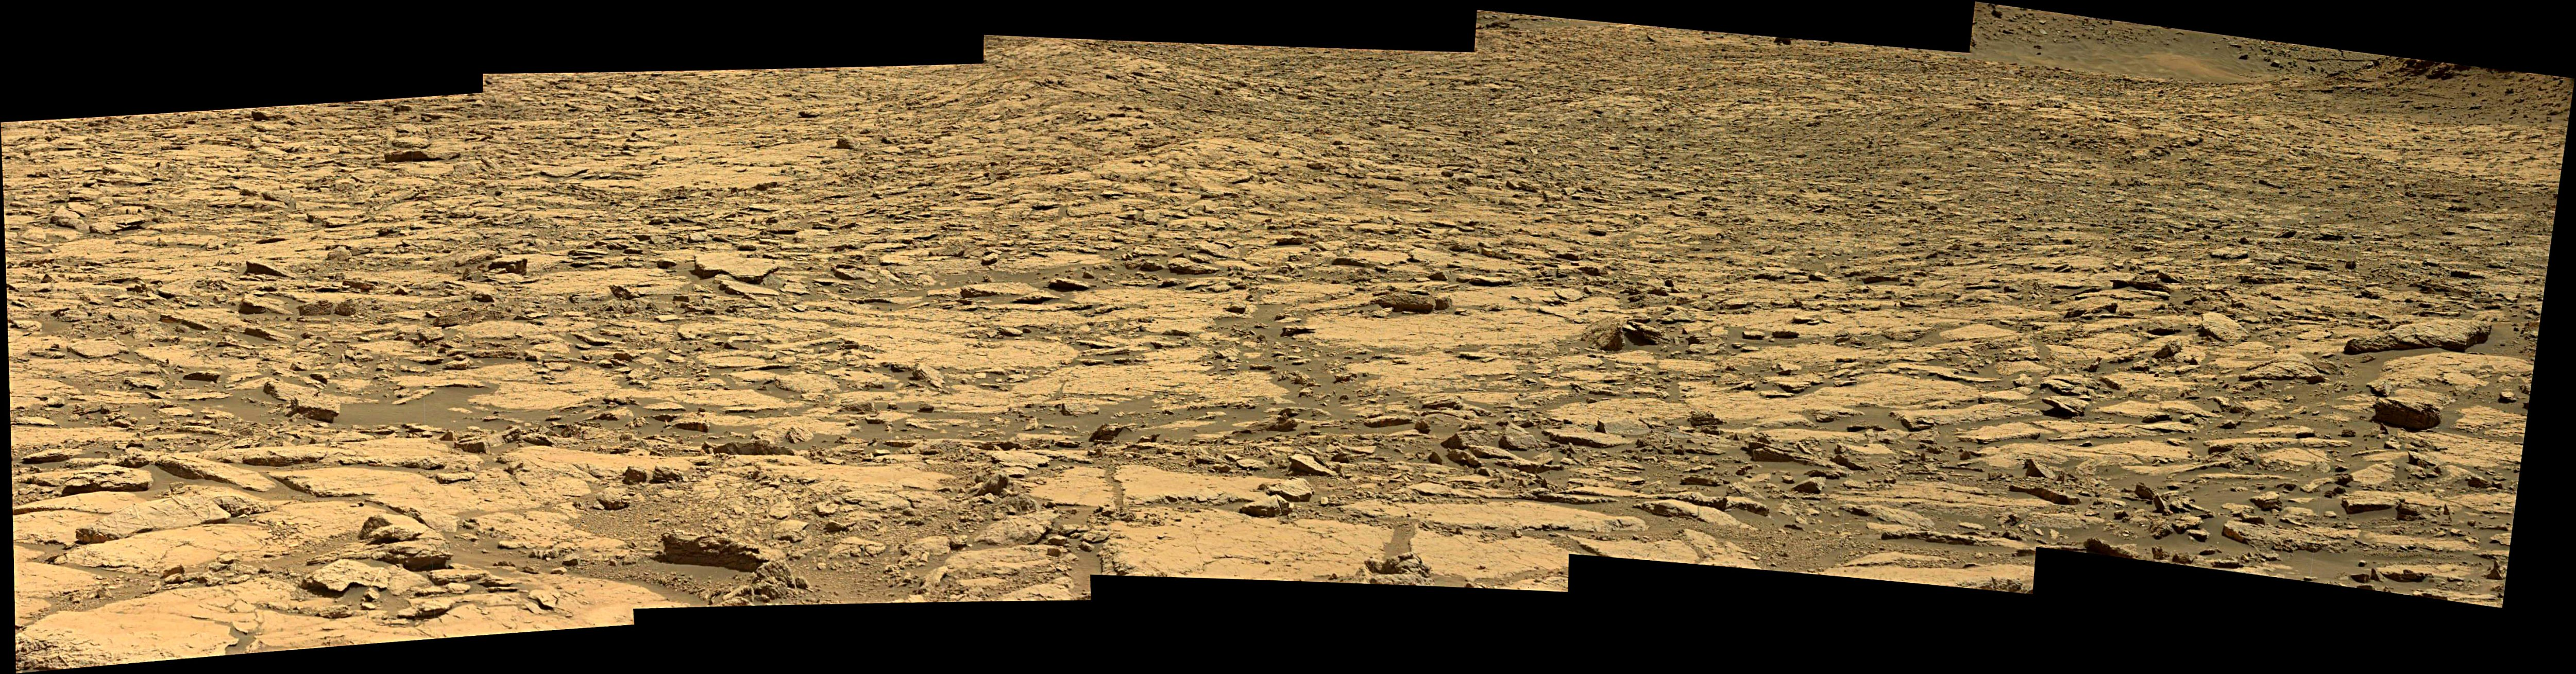 panoramic curiosity rover view 3e - sol 1433 - was life on mars